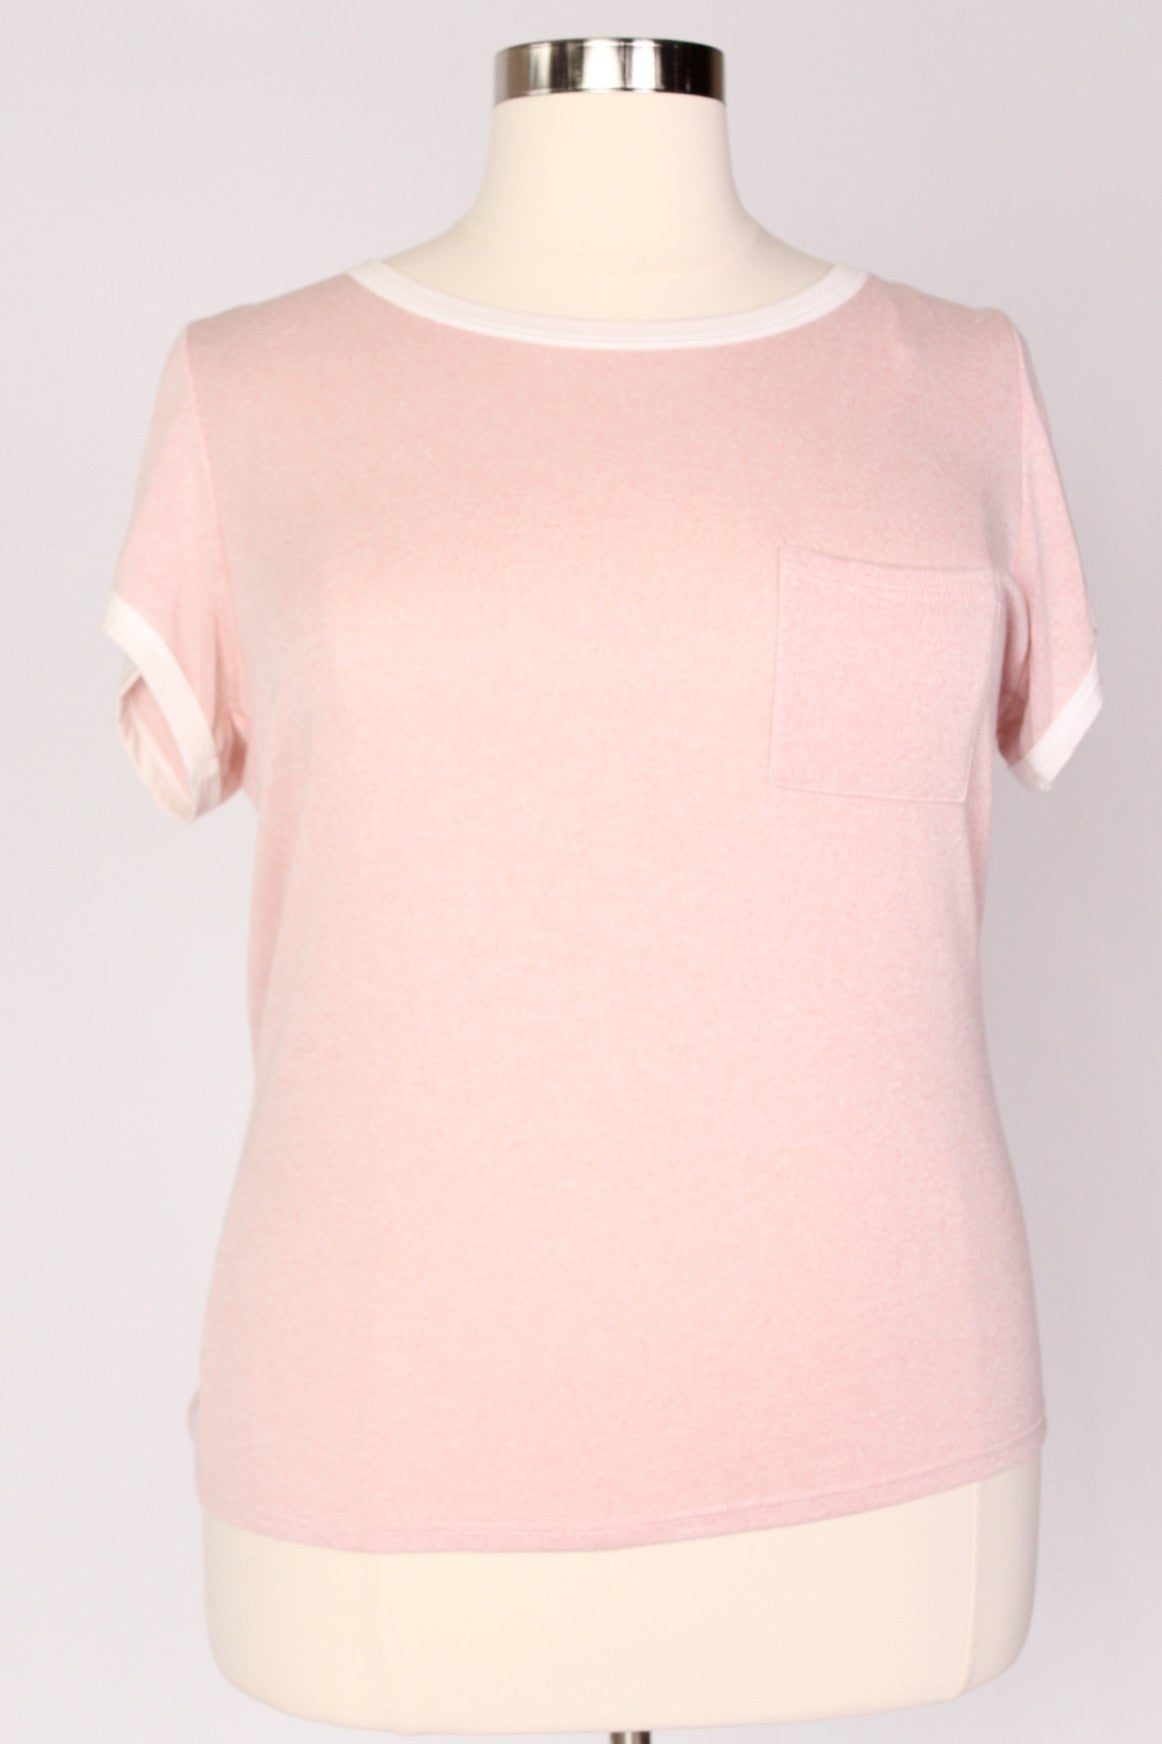 Everyone loves a comfy tee. A comfy tee in a perfect rose color? Well that's something we can't get enough of!